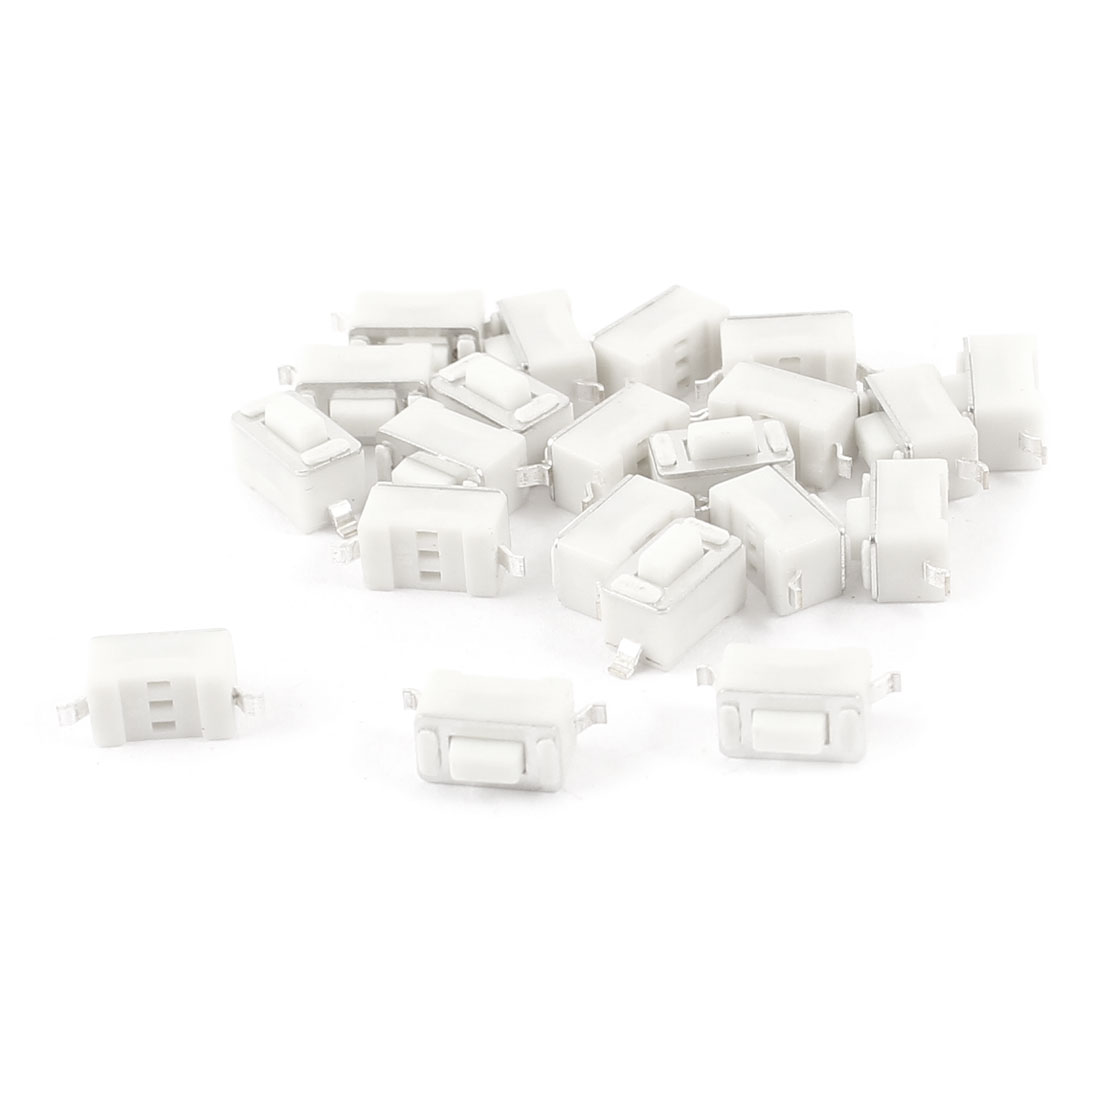 20pcs Momentary PCB SMT SMD Rectangle Push Button SPST Tactile Tact Switch White 6mmx3mmx4.3mm